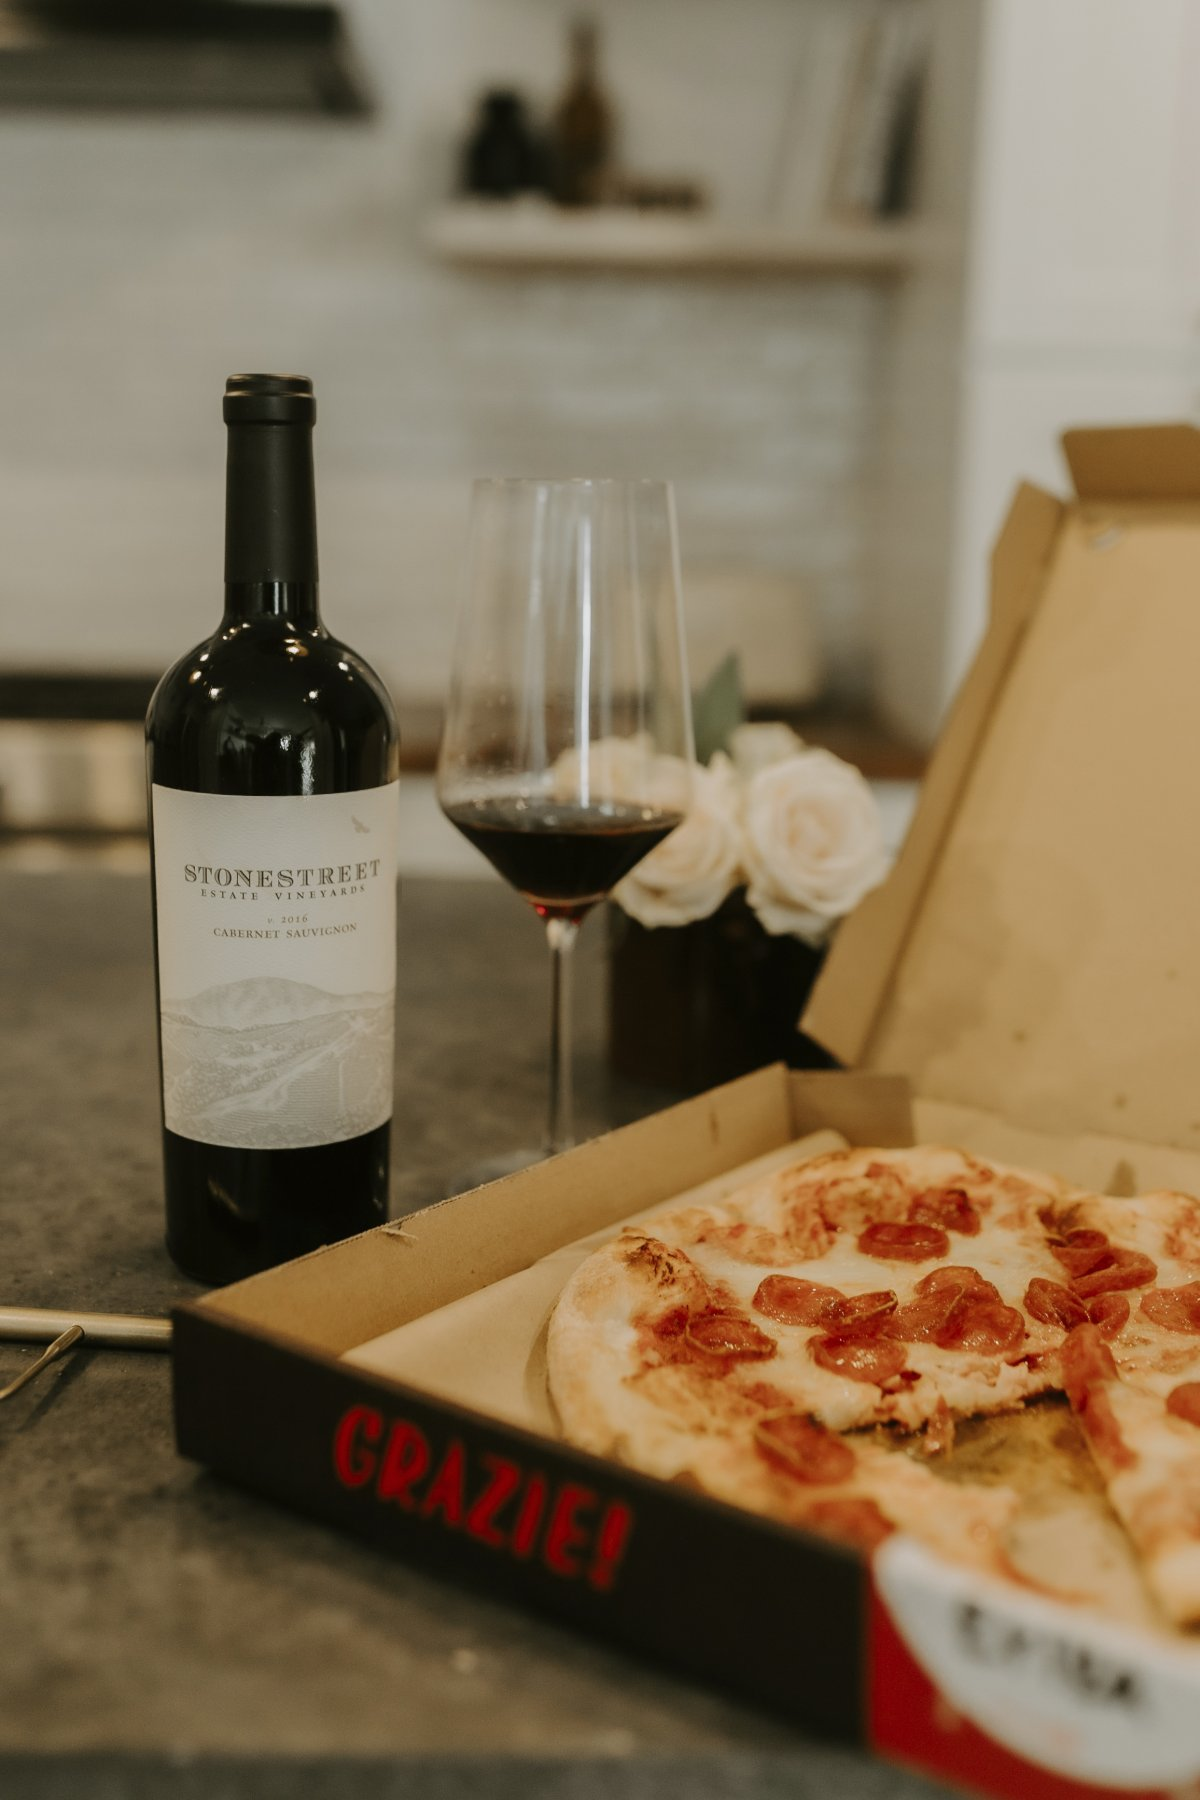 Bottle of Wine and Glass of Red Wine Next to a Pizza